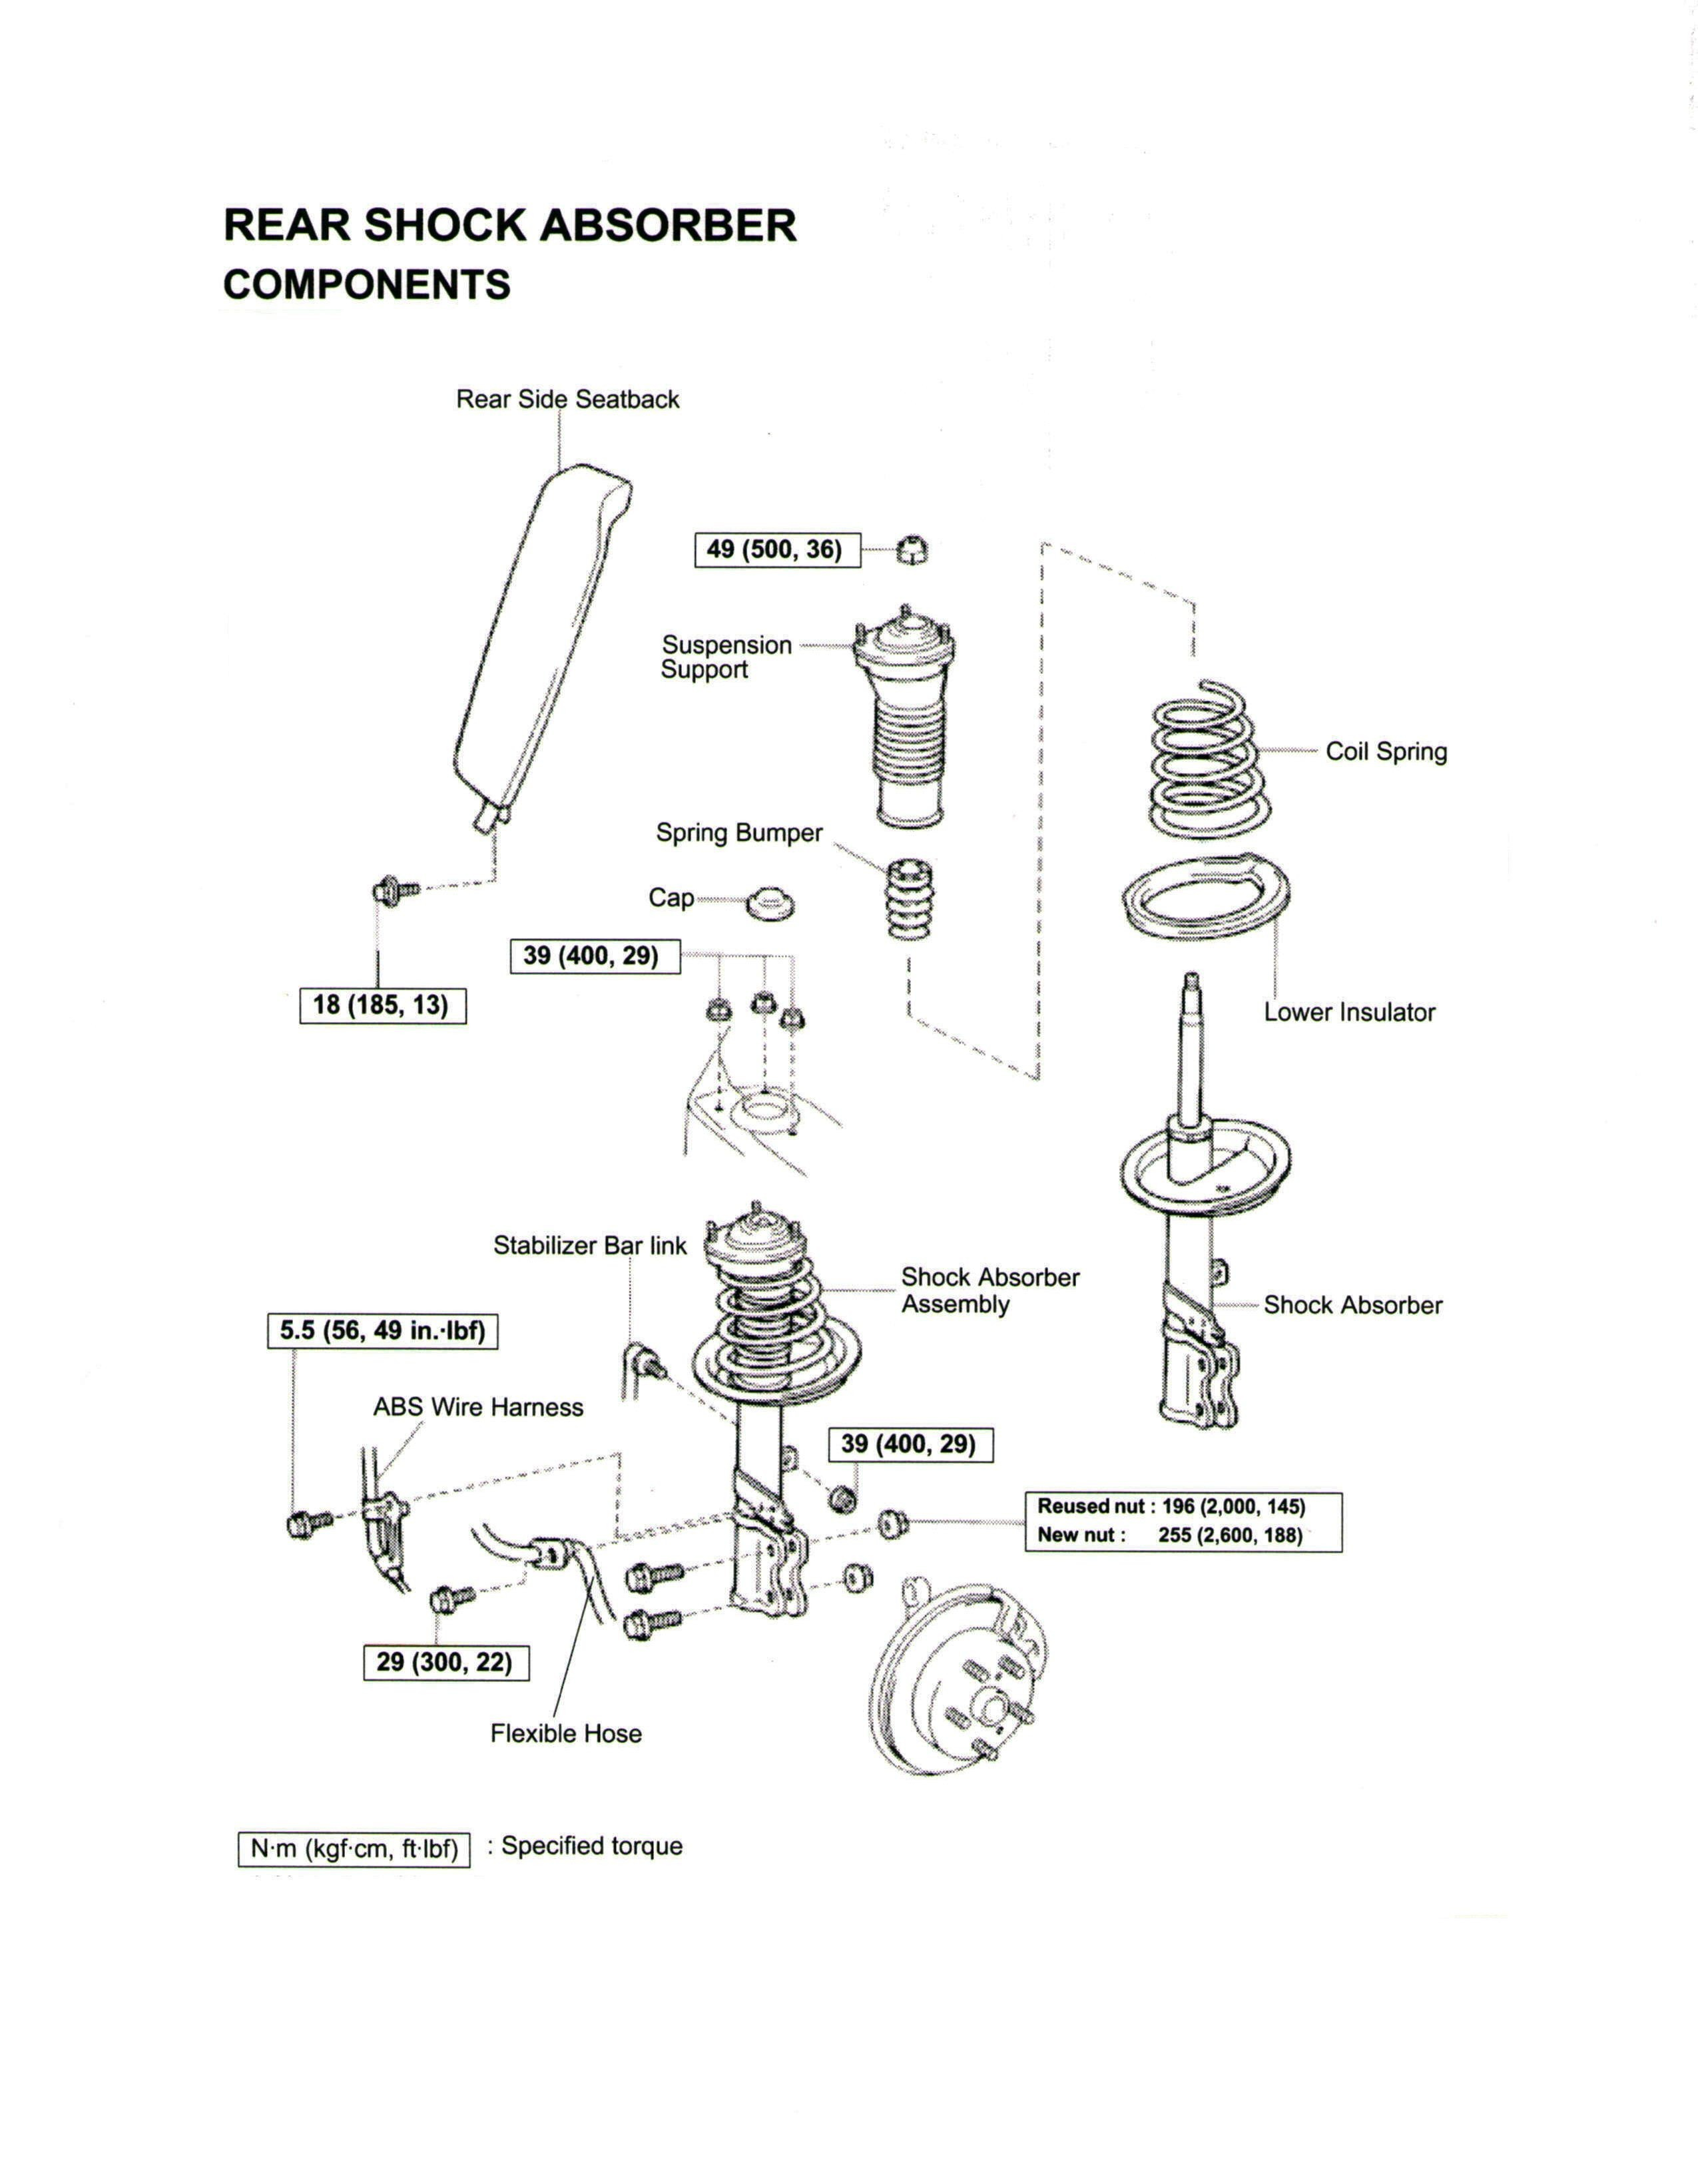 1997 toyota corolla engine diagram 1997 toyota camry engine diagram replacing the rear strut and or of 1997 toyota corolla engine diagram toyota corolla engine diagram best wiring library